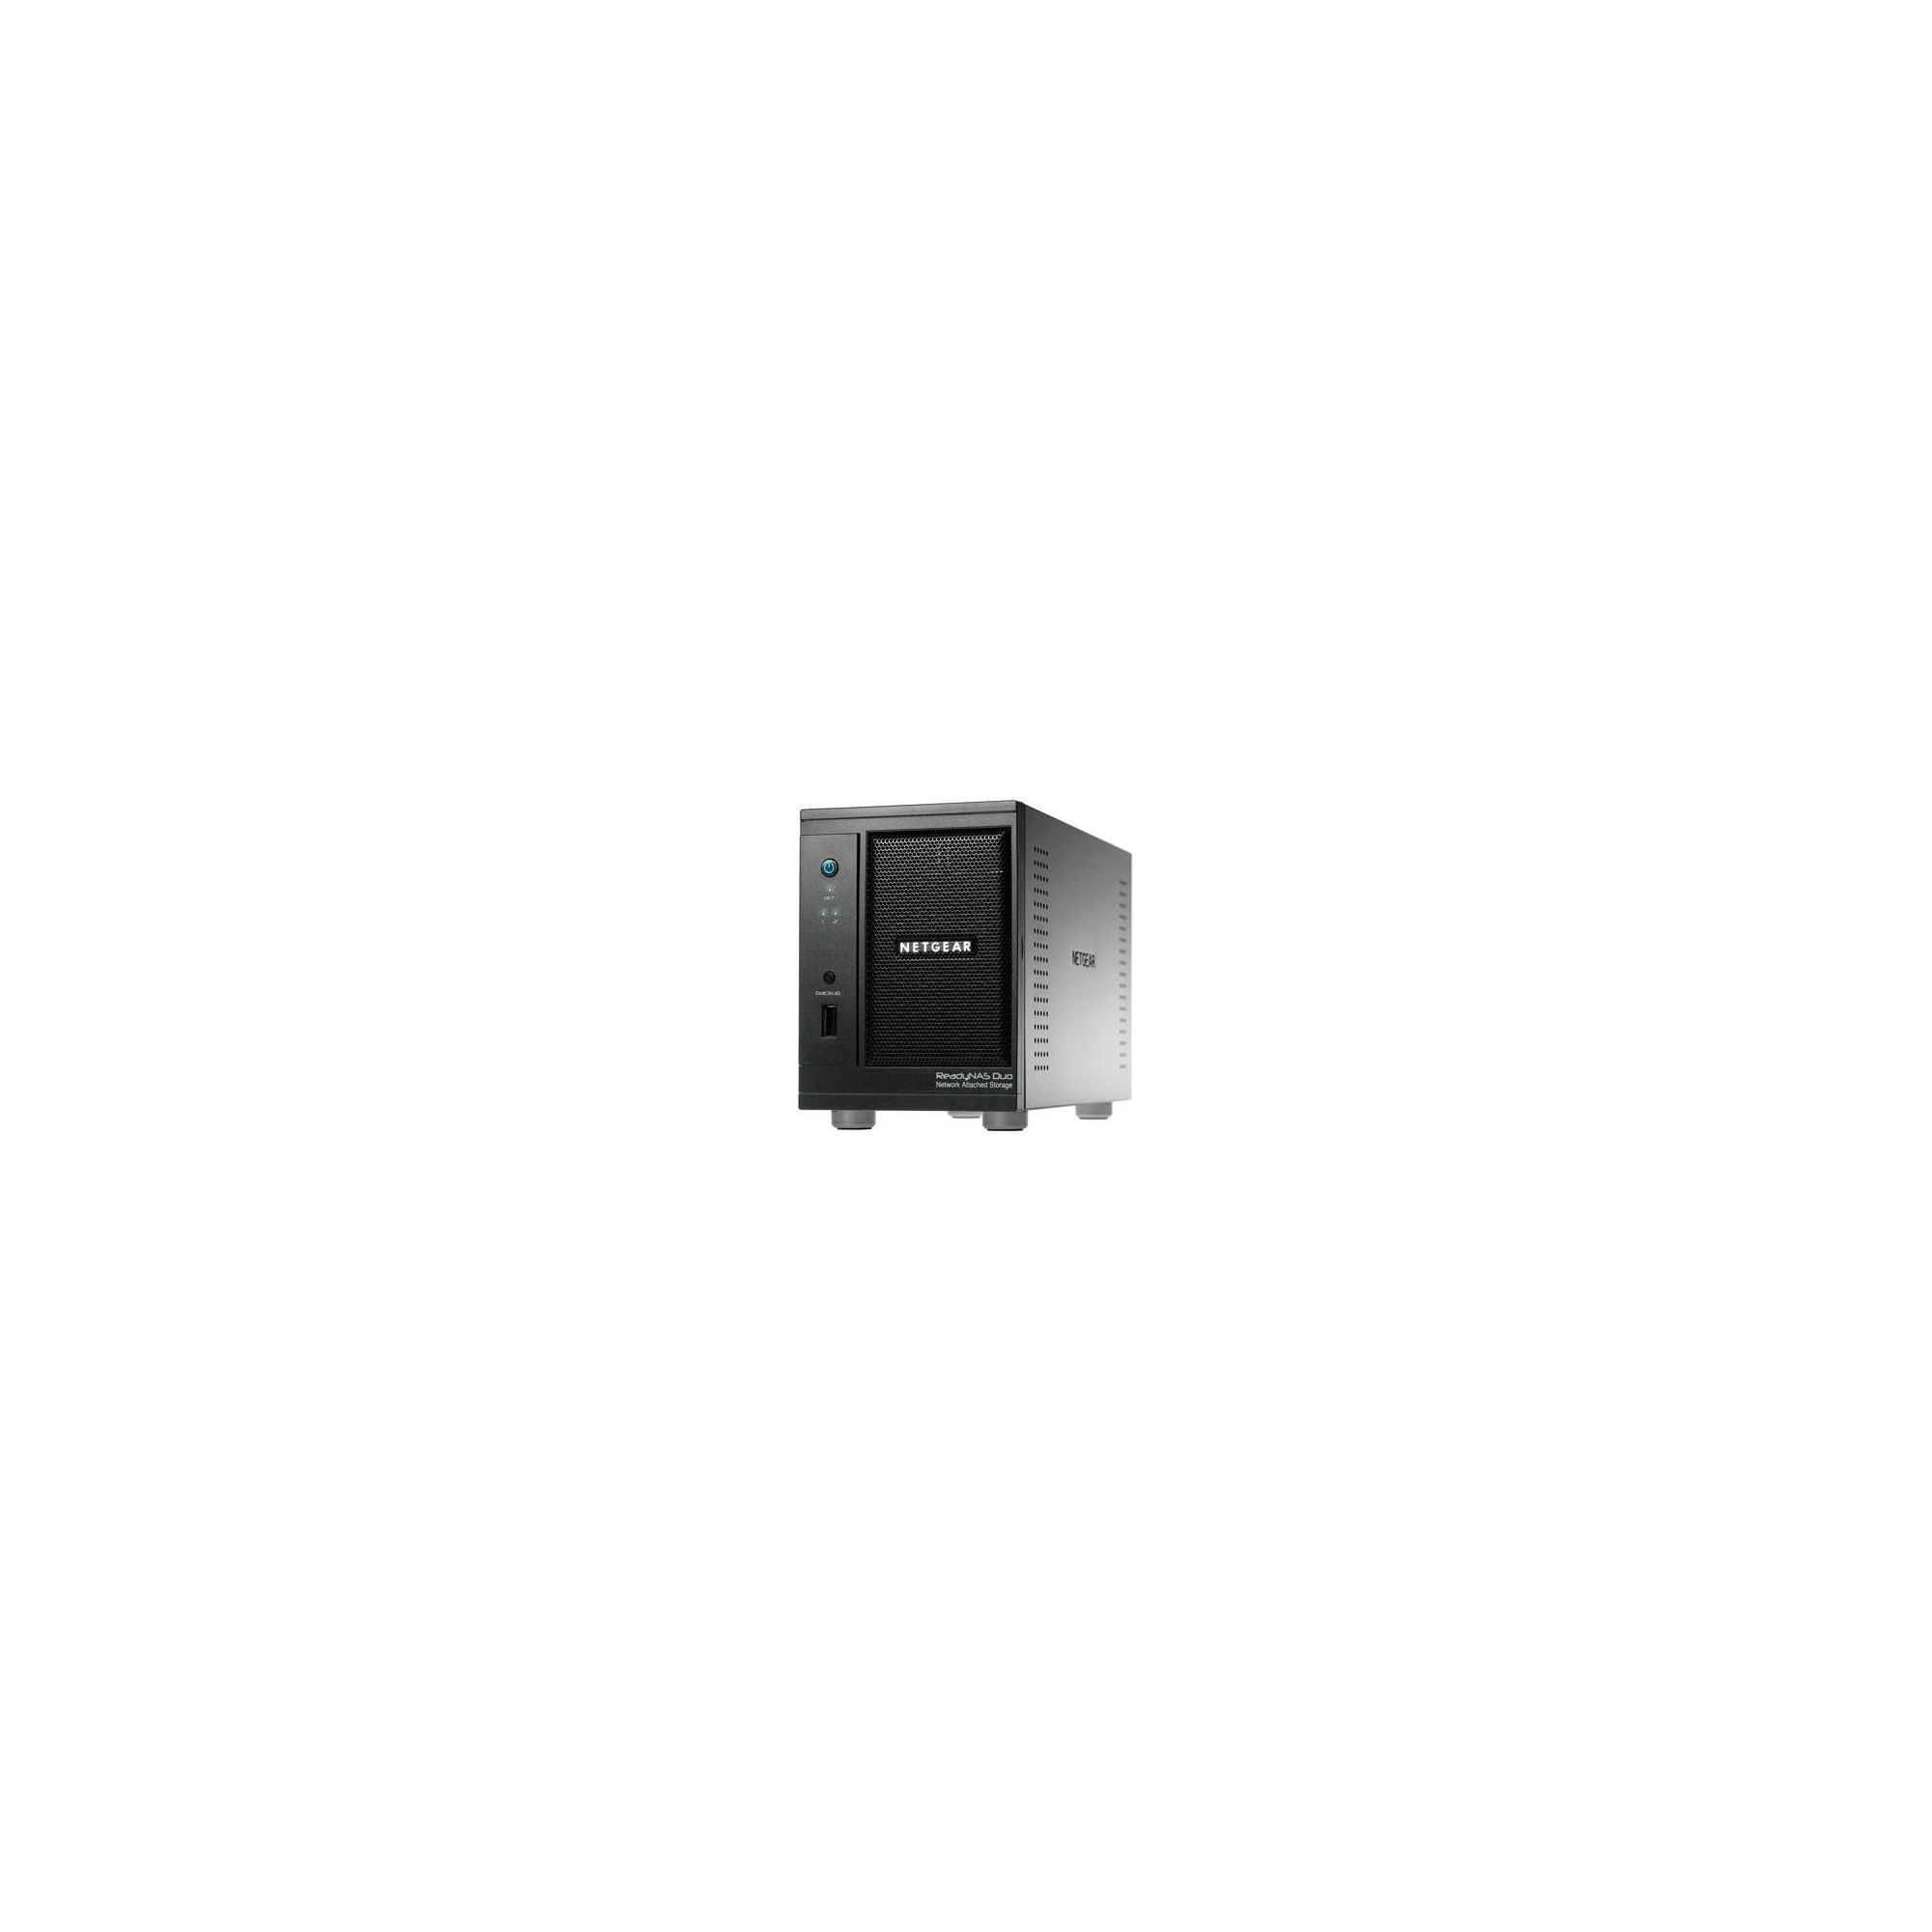 Netgear ReadyNAS Duo RND2110 (1000GB) Desktop Network Storage CBID:1472072 at Tesco Direct